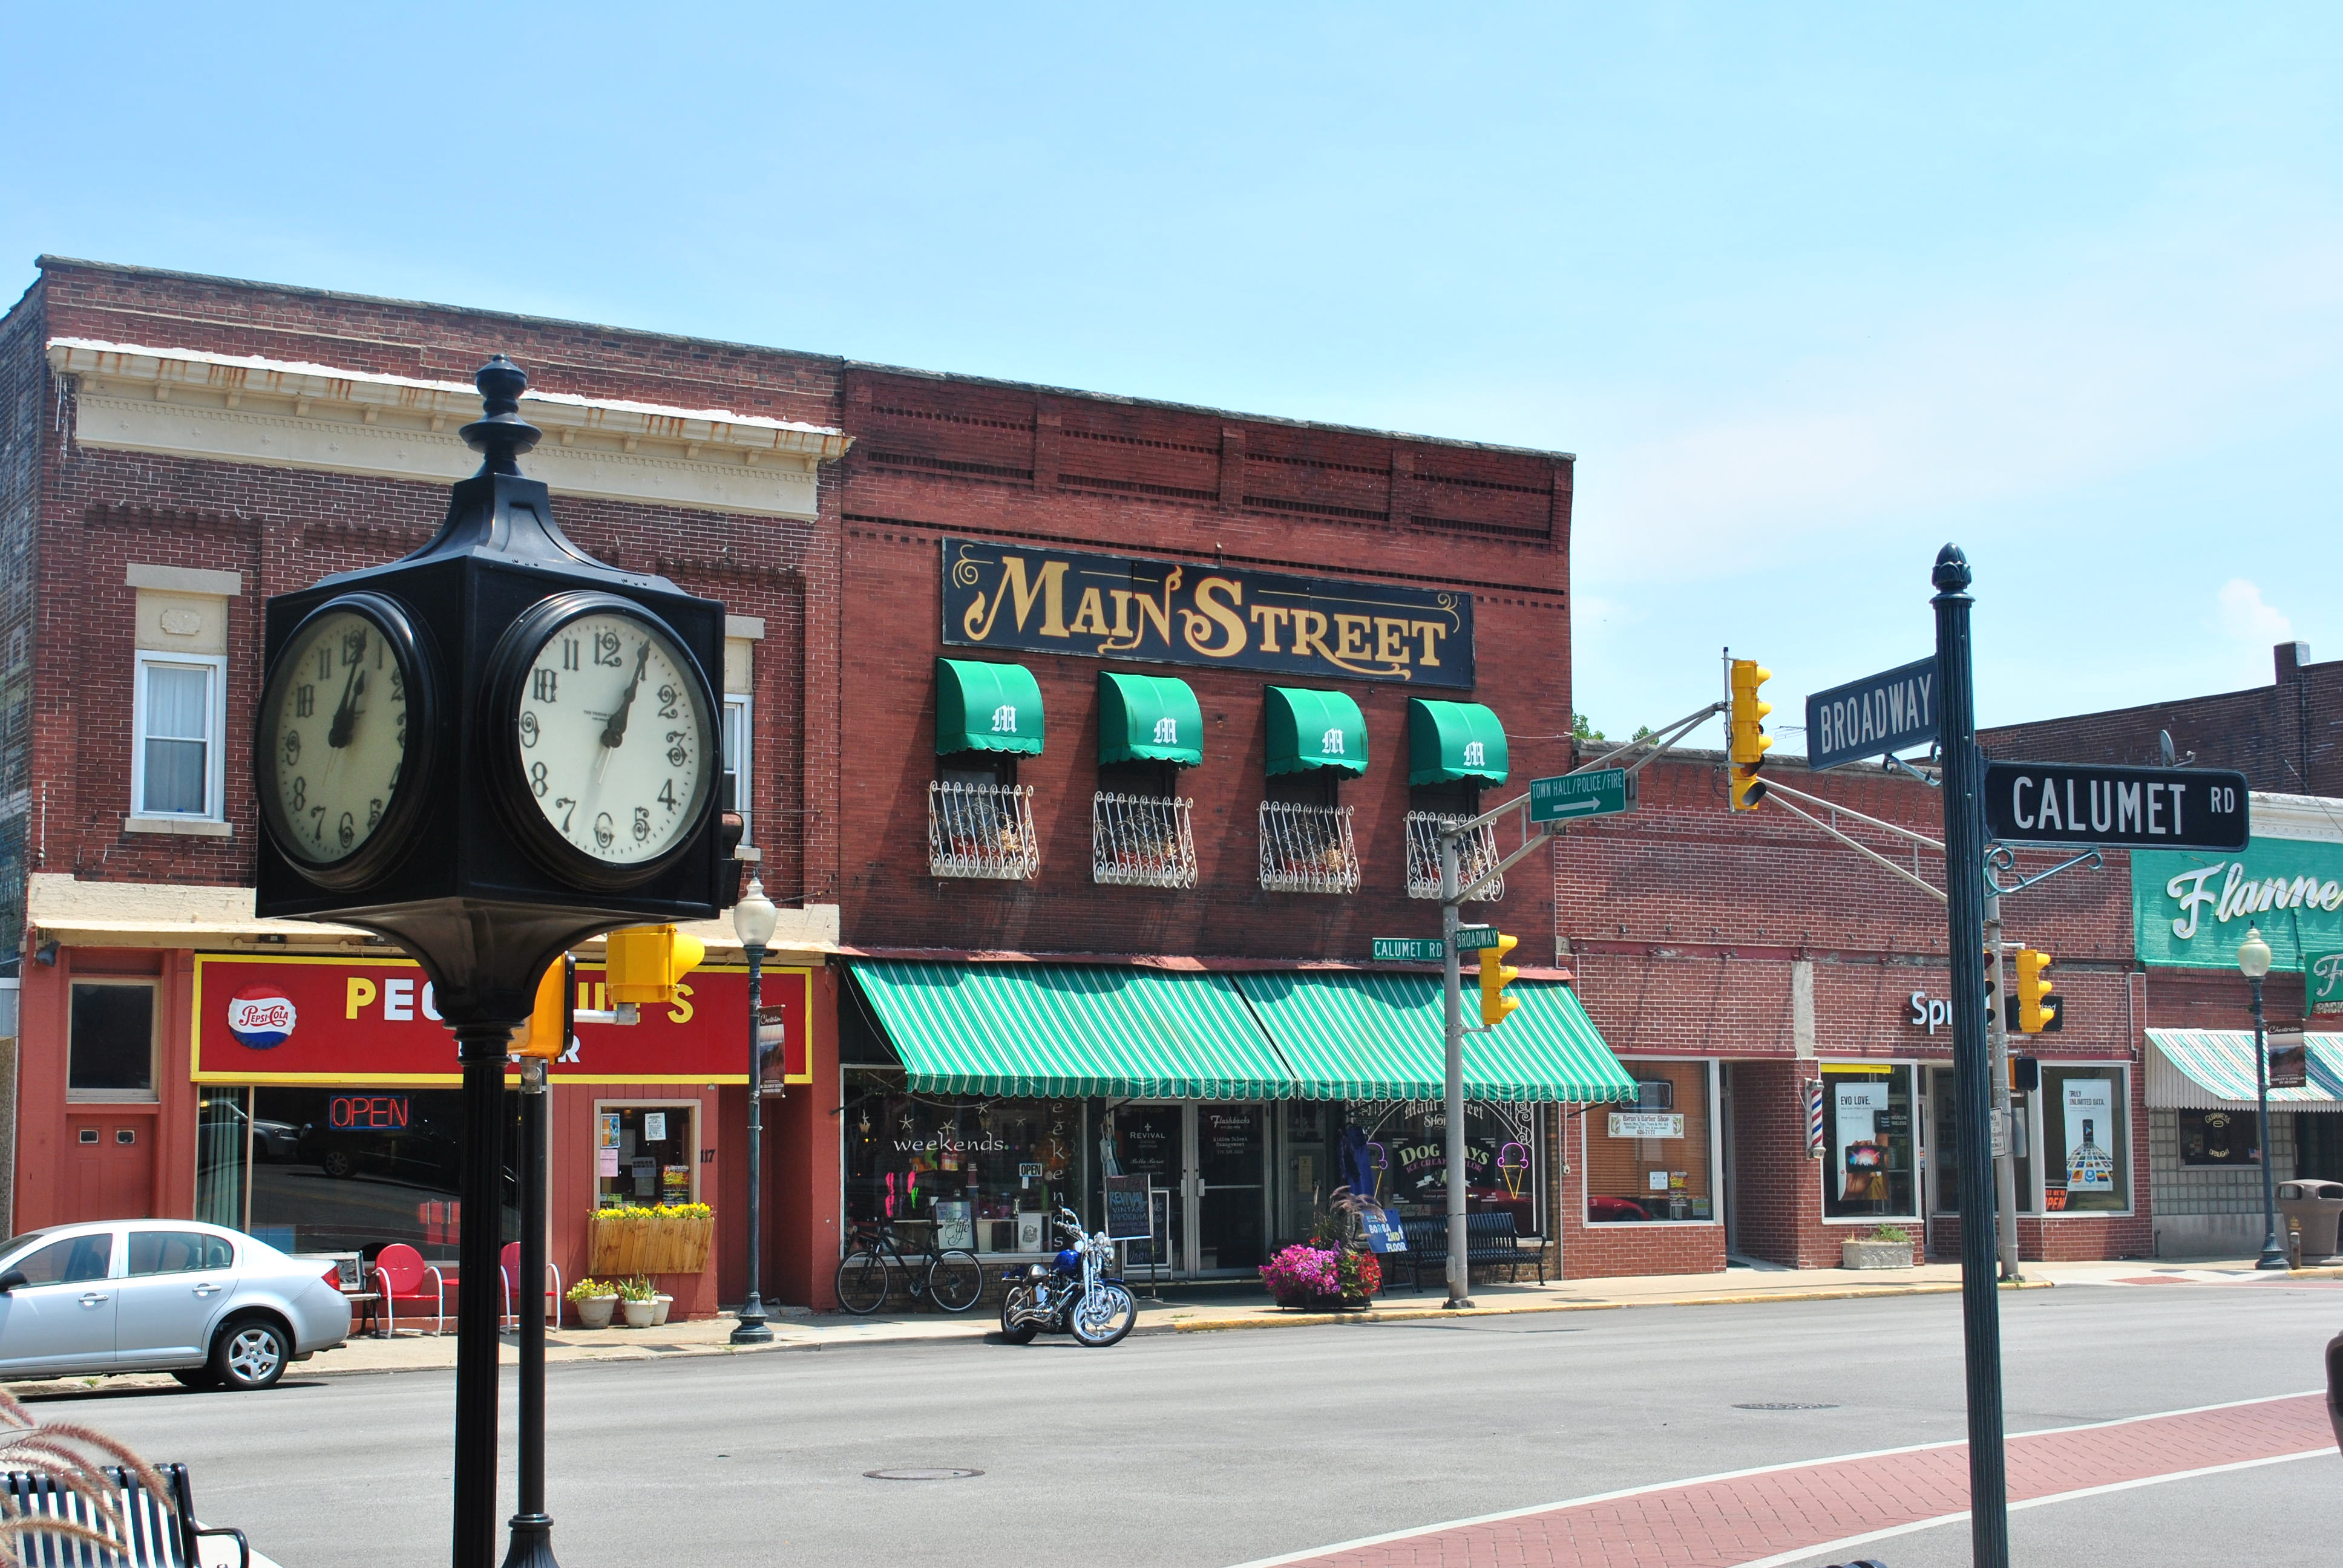 Amazon and Main Street have a frosty relationship